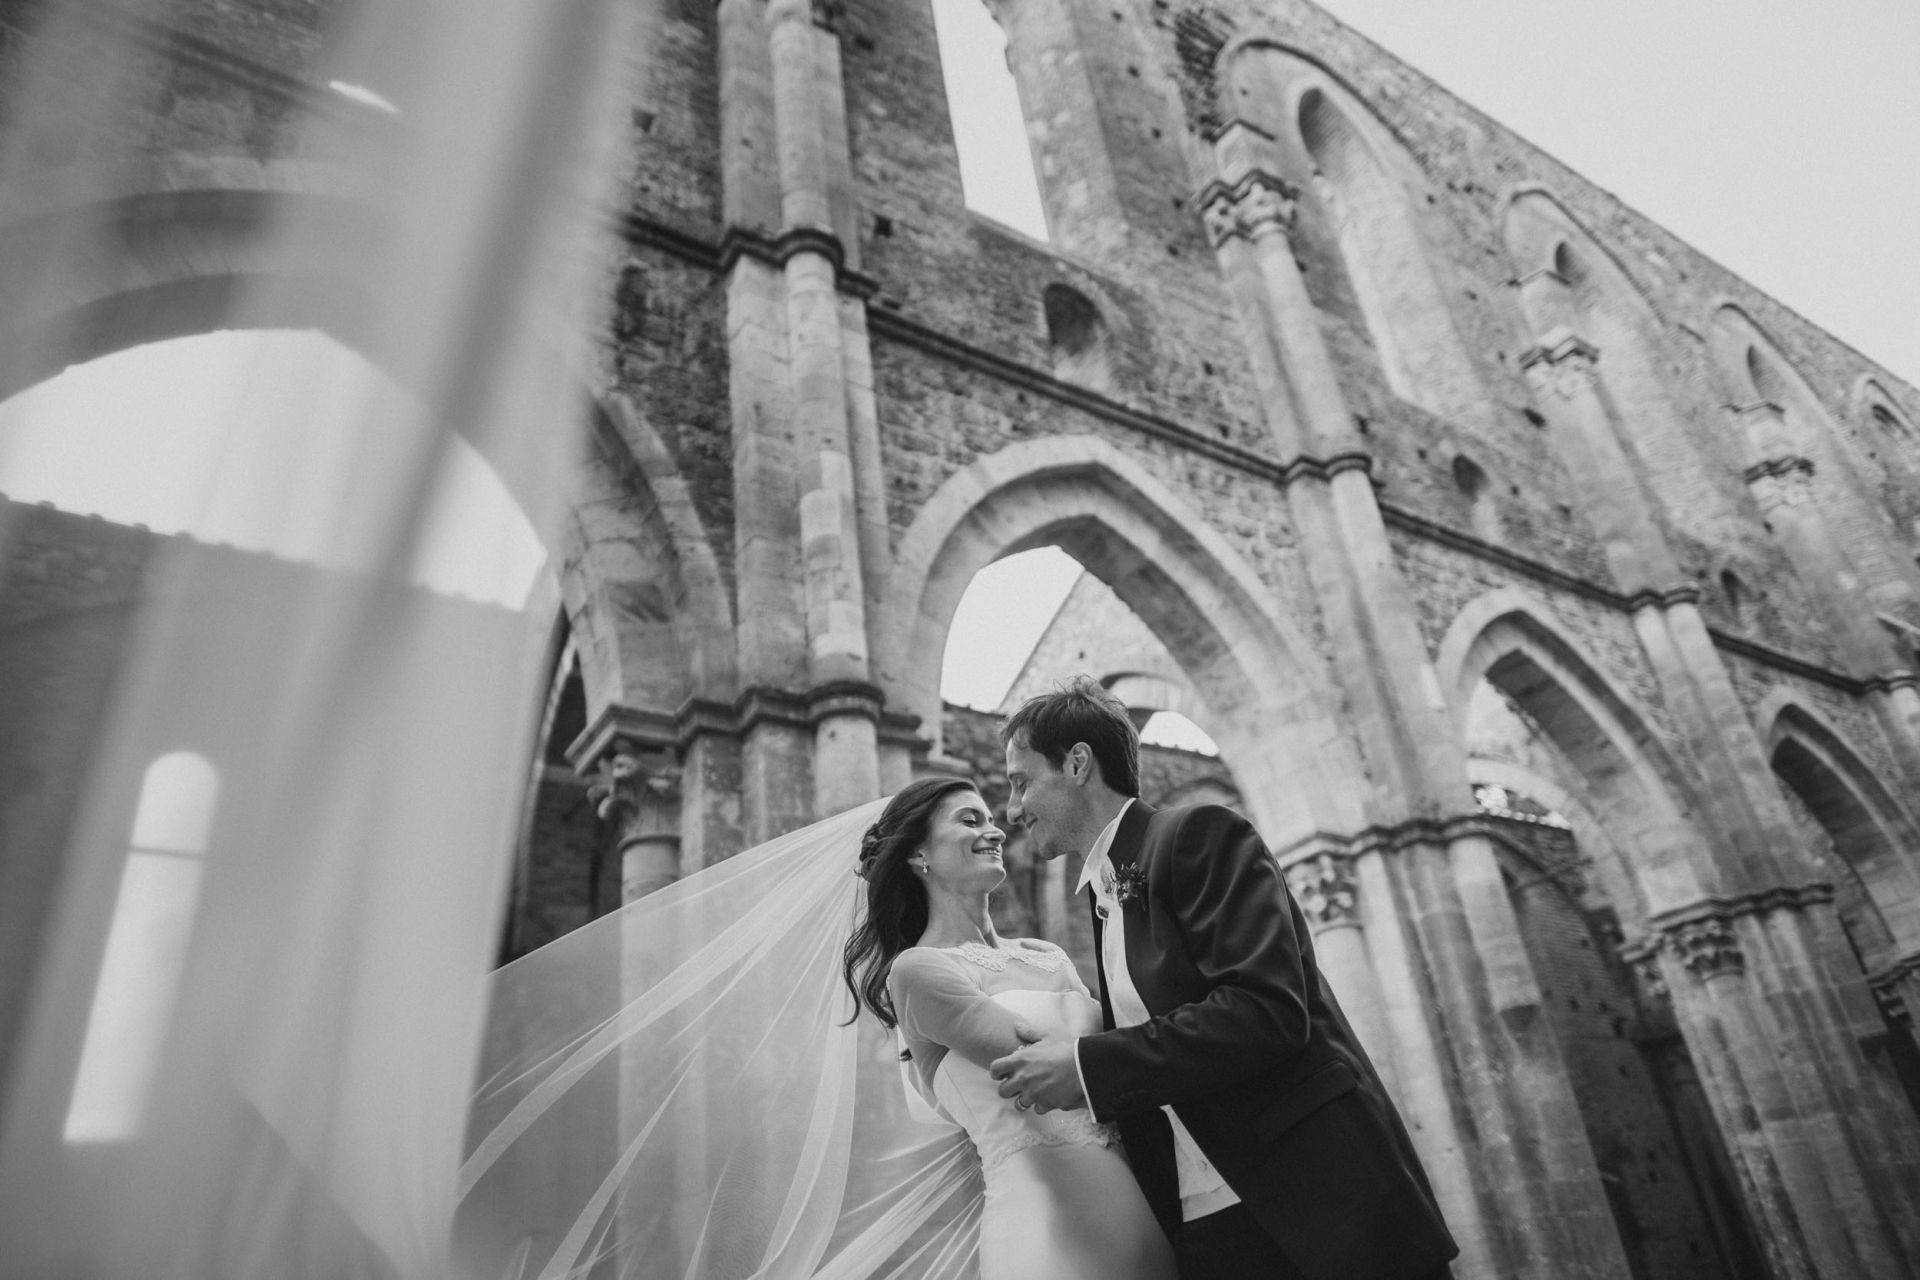 San Galgano Abbey Elopement Picture, Chiusdino - Italian Weddings   Just after sunset, the newlyweds smile at one another